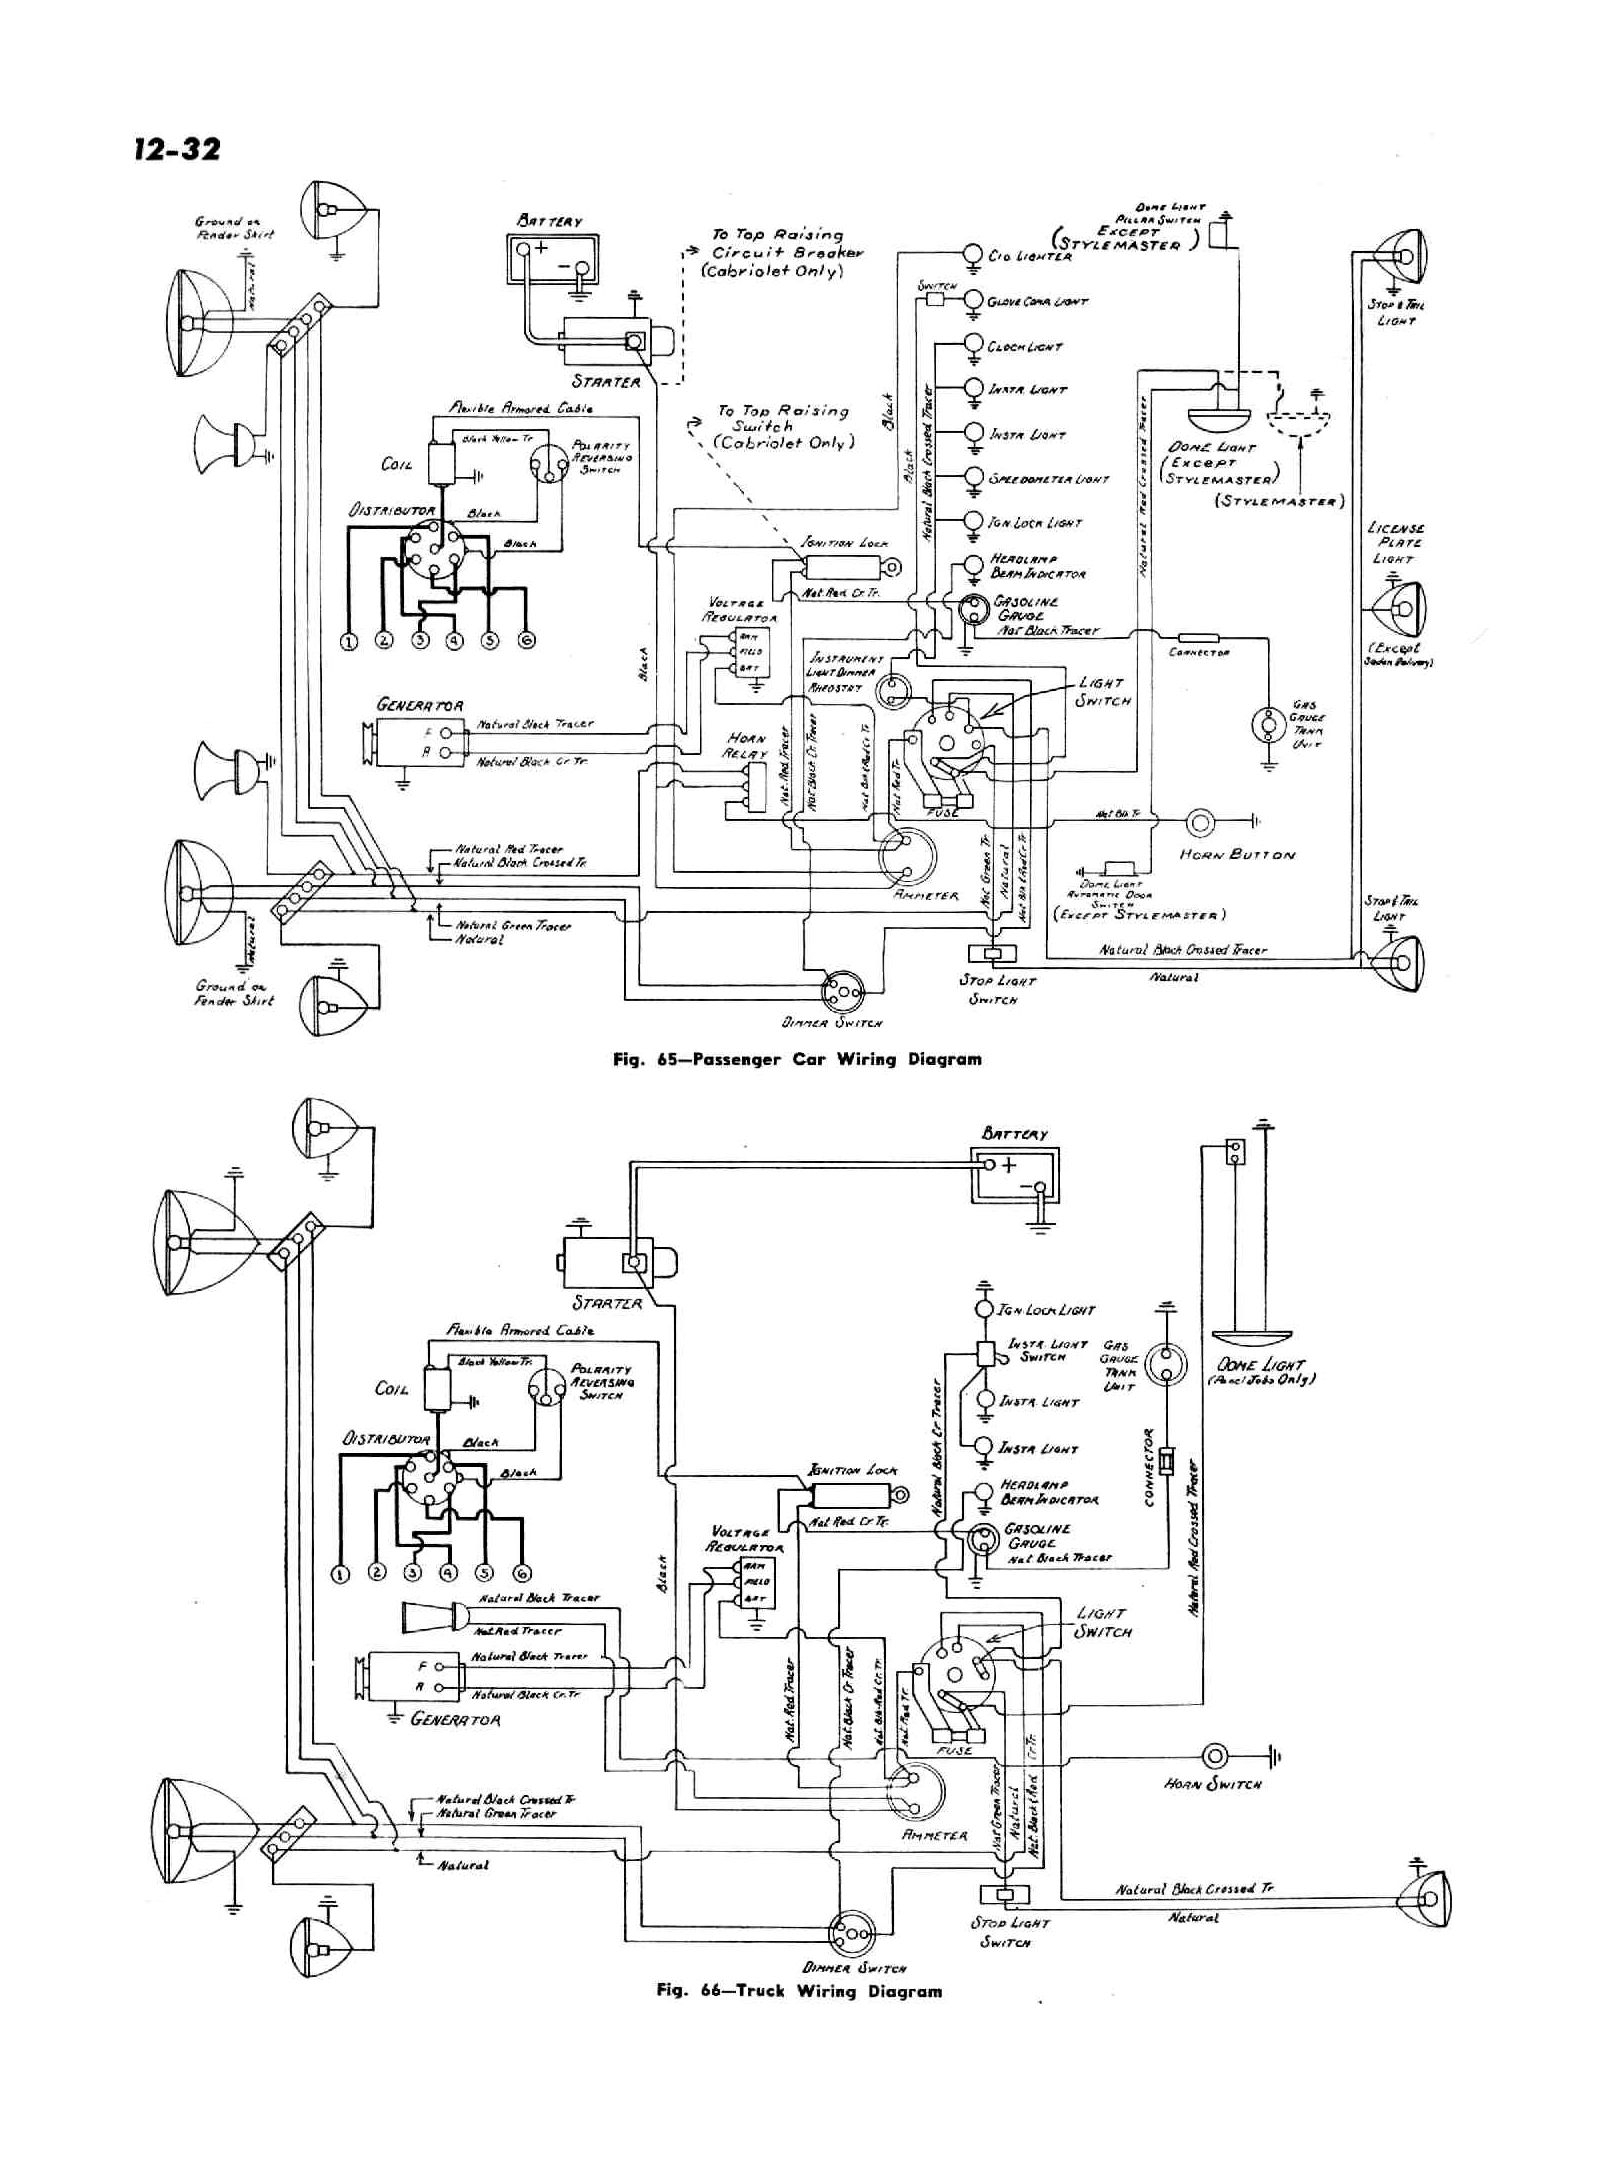 chevy wiring diagrams with 6 volt generator wiring diagram?resize\=665%2C899\&ssl\=1 ford 6000 wiring diagram wiring diagram simonand ford 5000 wiring diagram at crackthecode.co